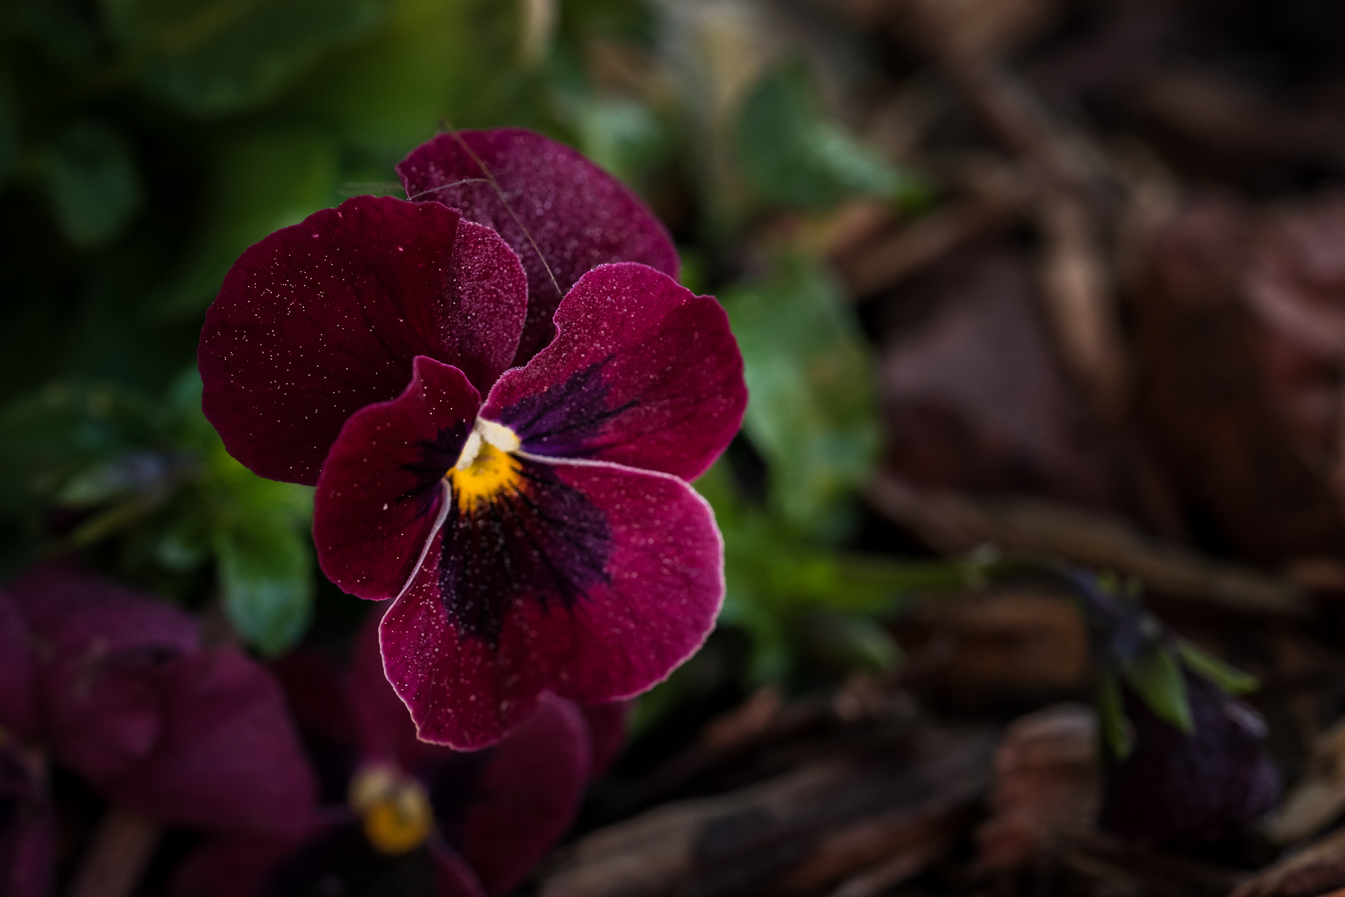 virginia beach backyard garden photography project